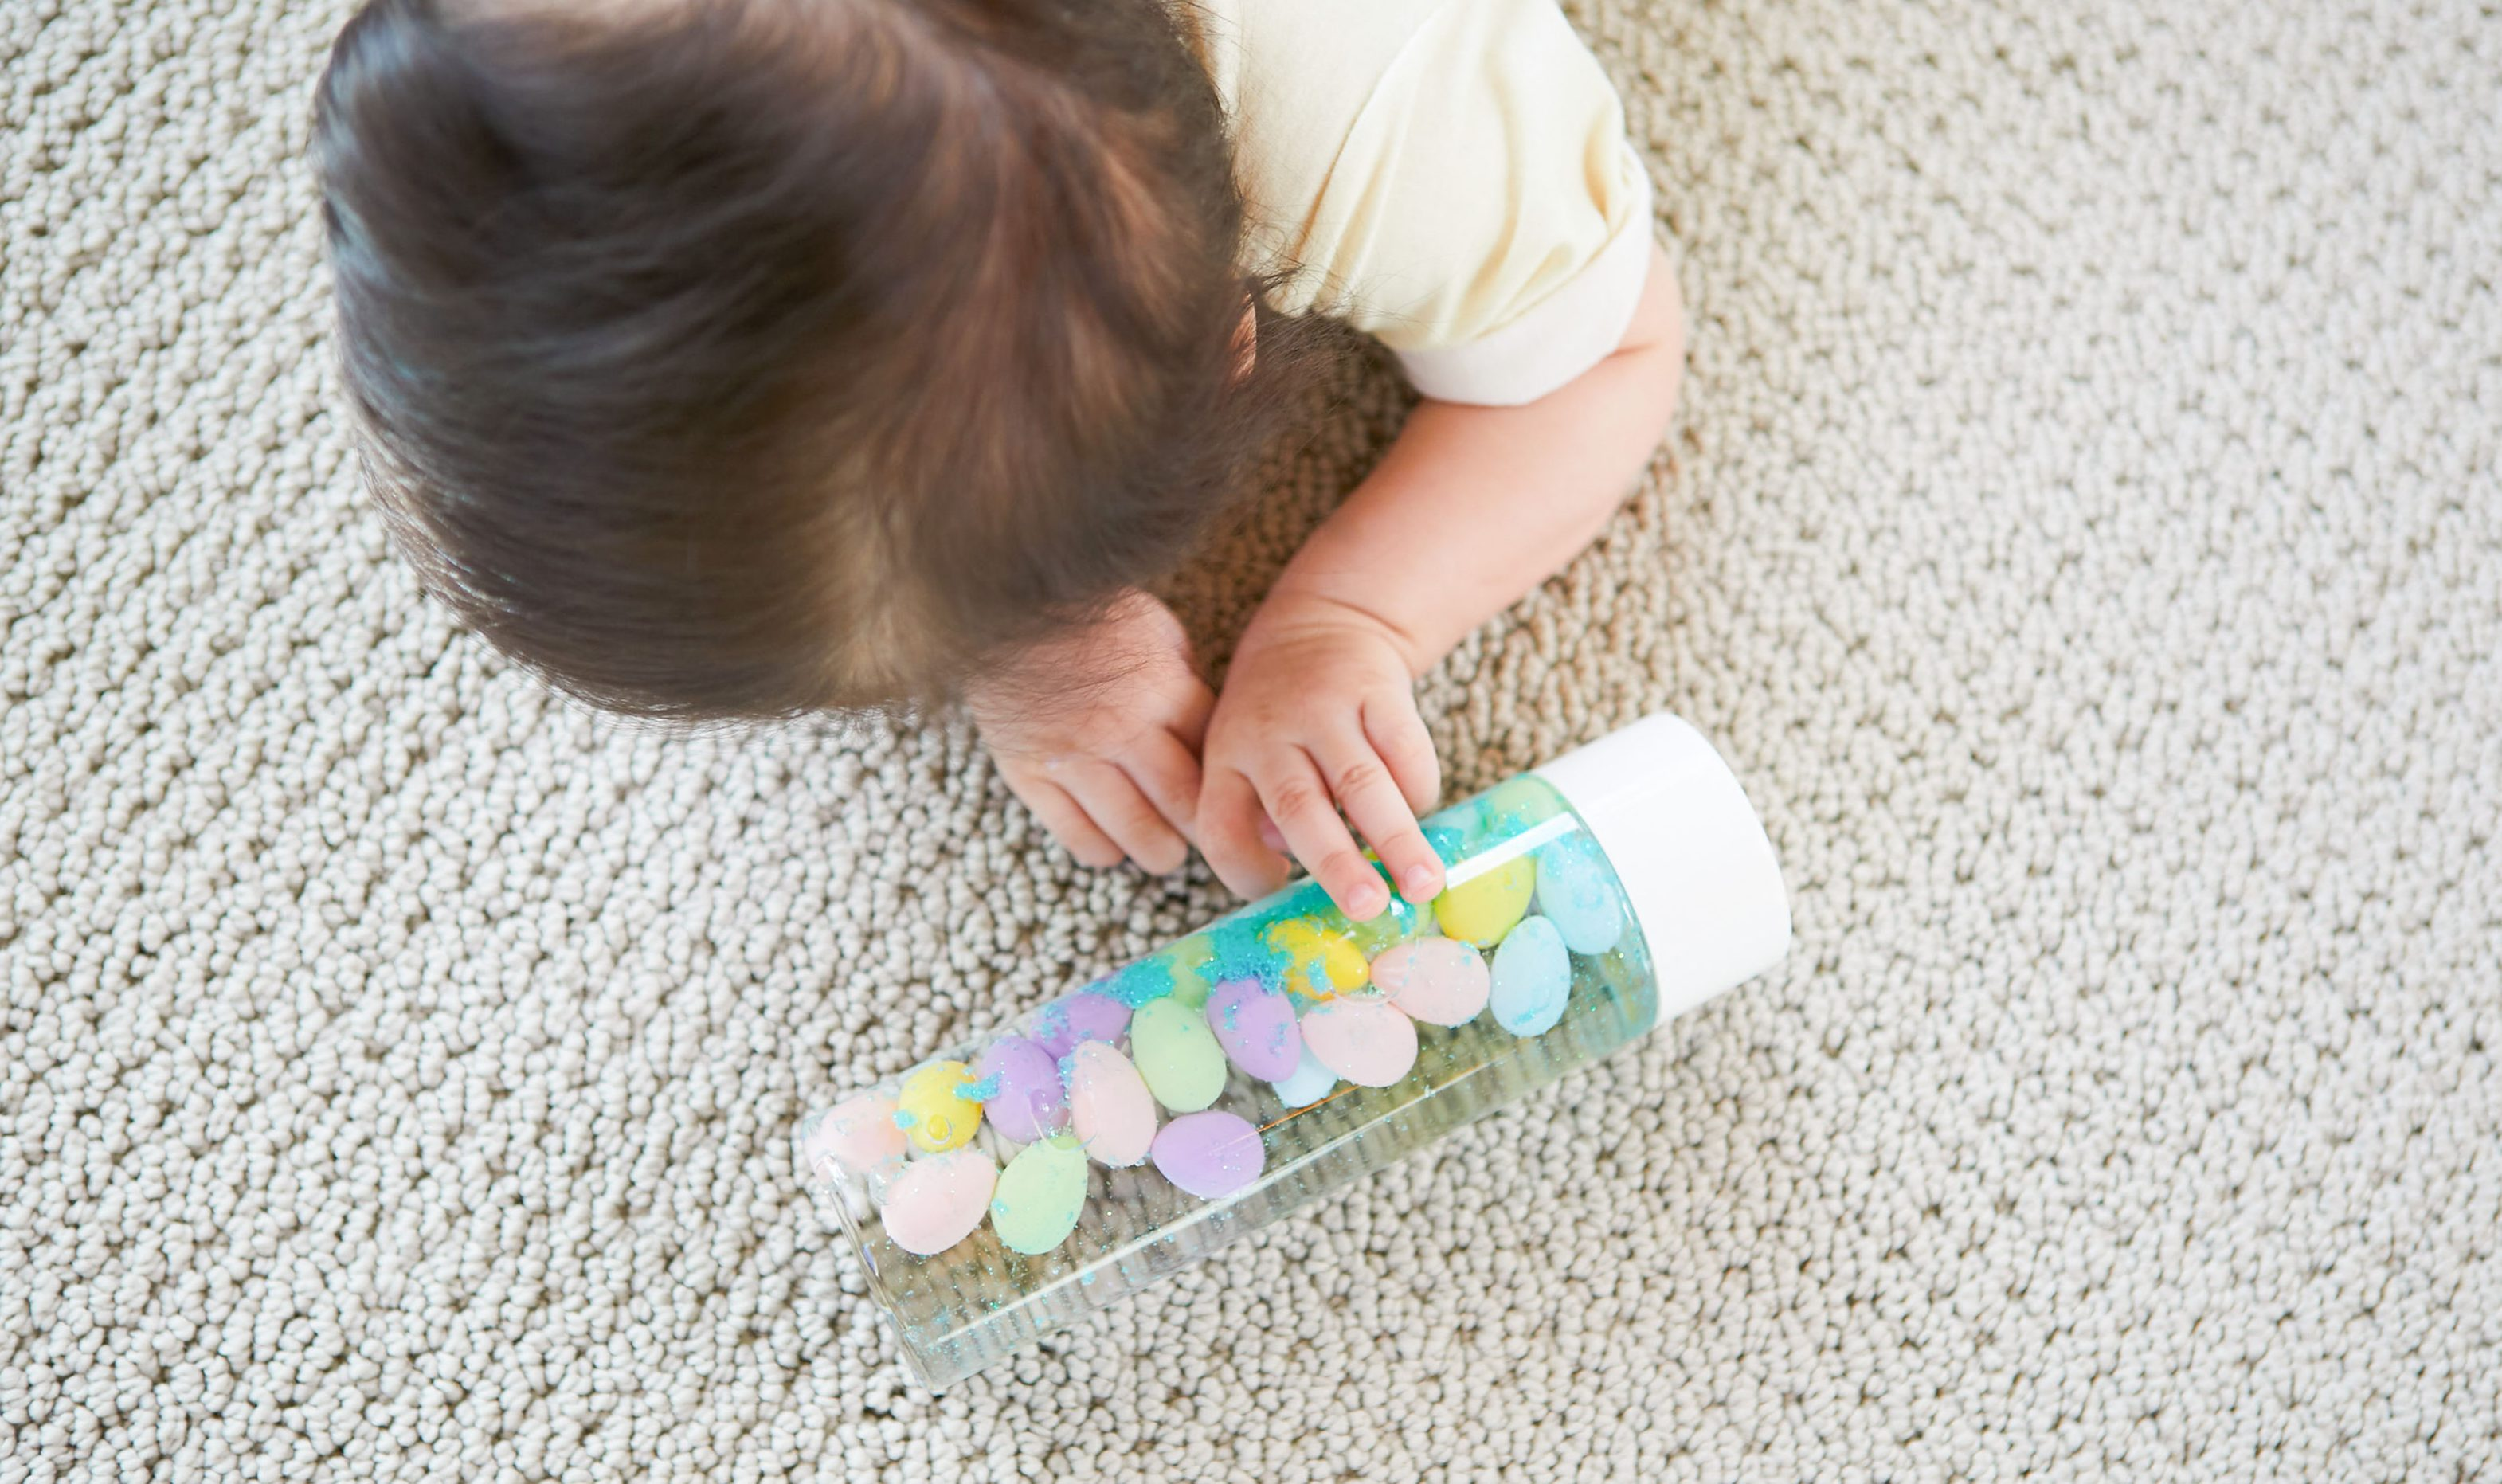 Baby doing tummy time and looking at a water bottle filled with different colors